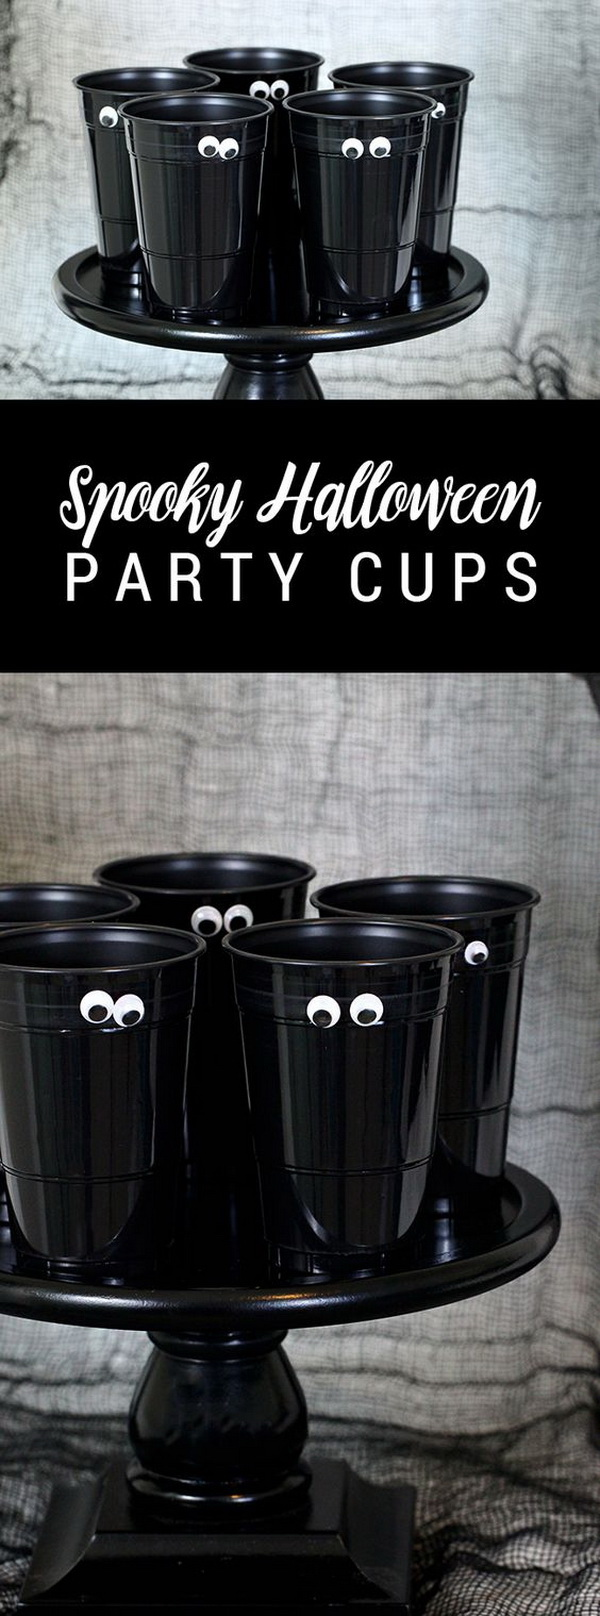 DIY Spooky Halloween Party Cups. These whimsical all-black painted cups are great as centerpieces for your next Halloween party.